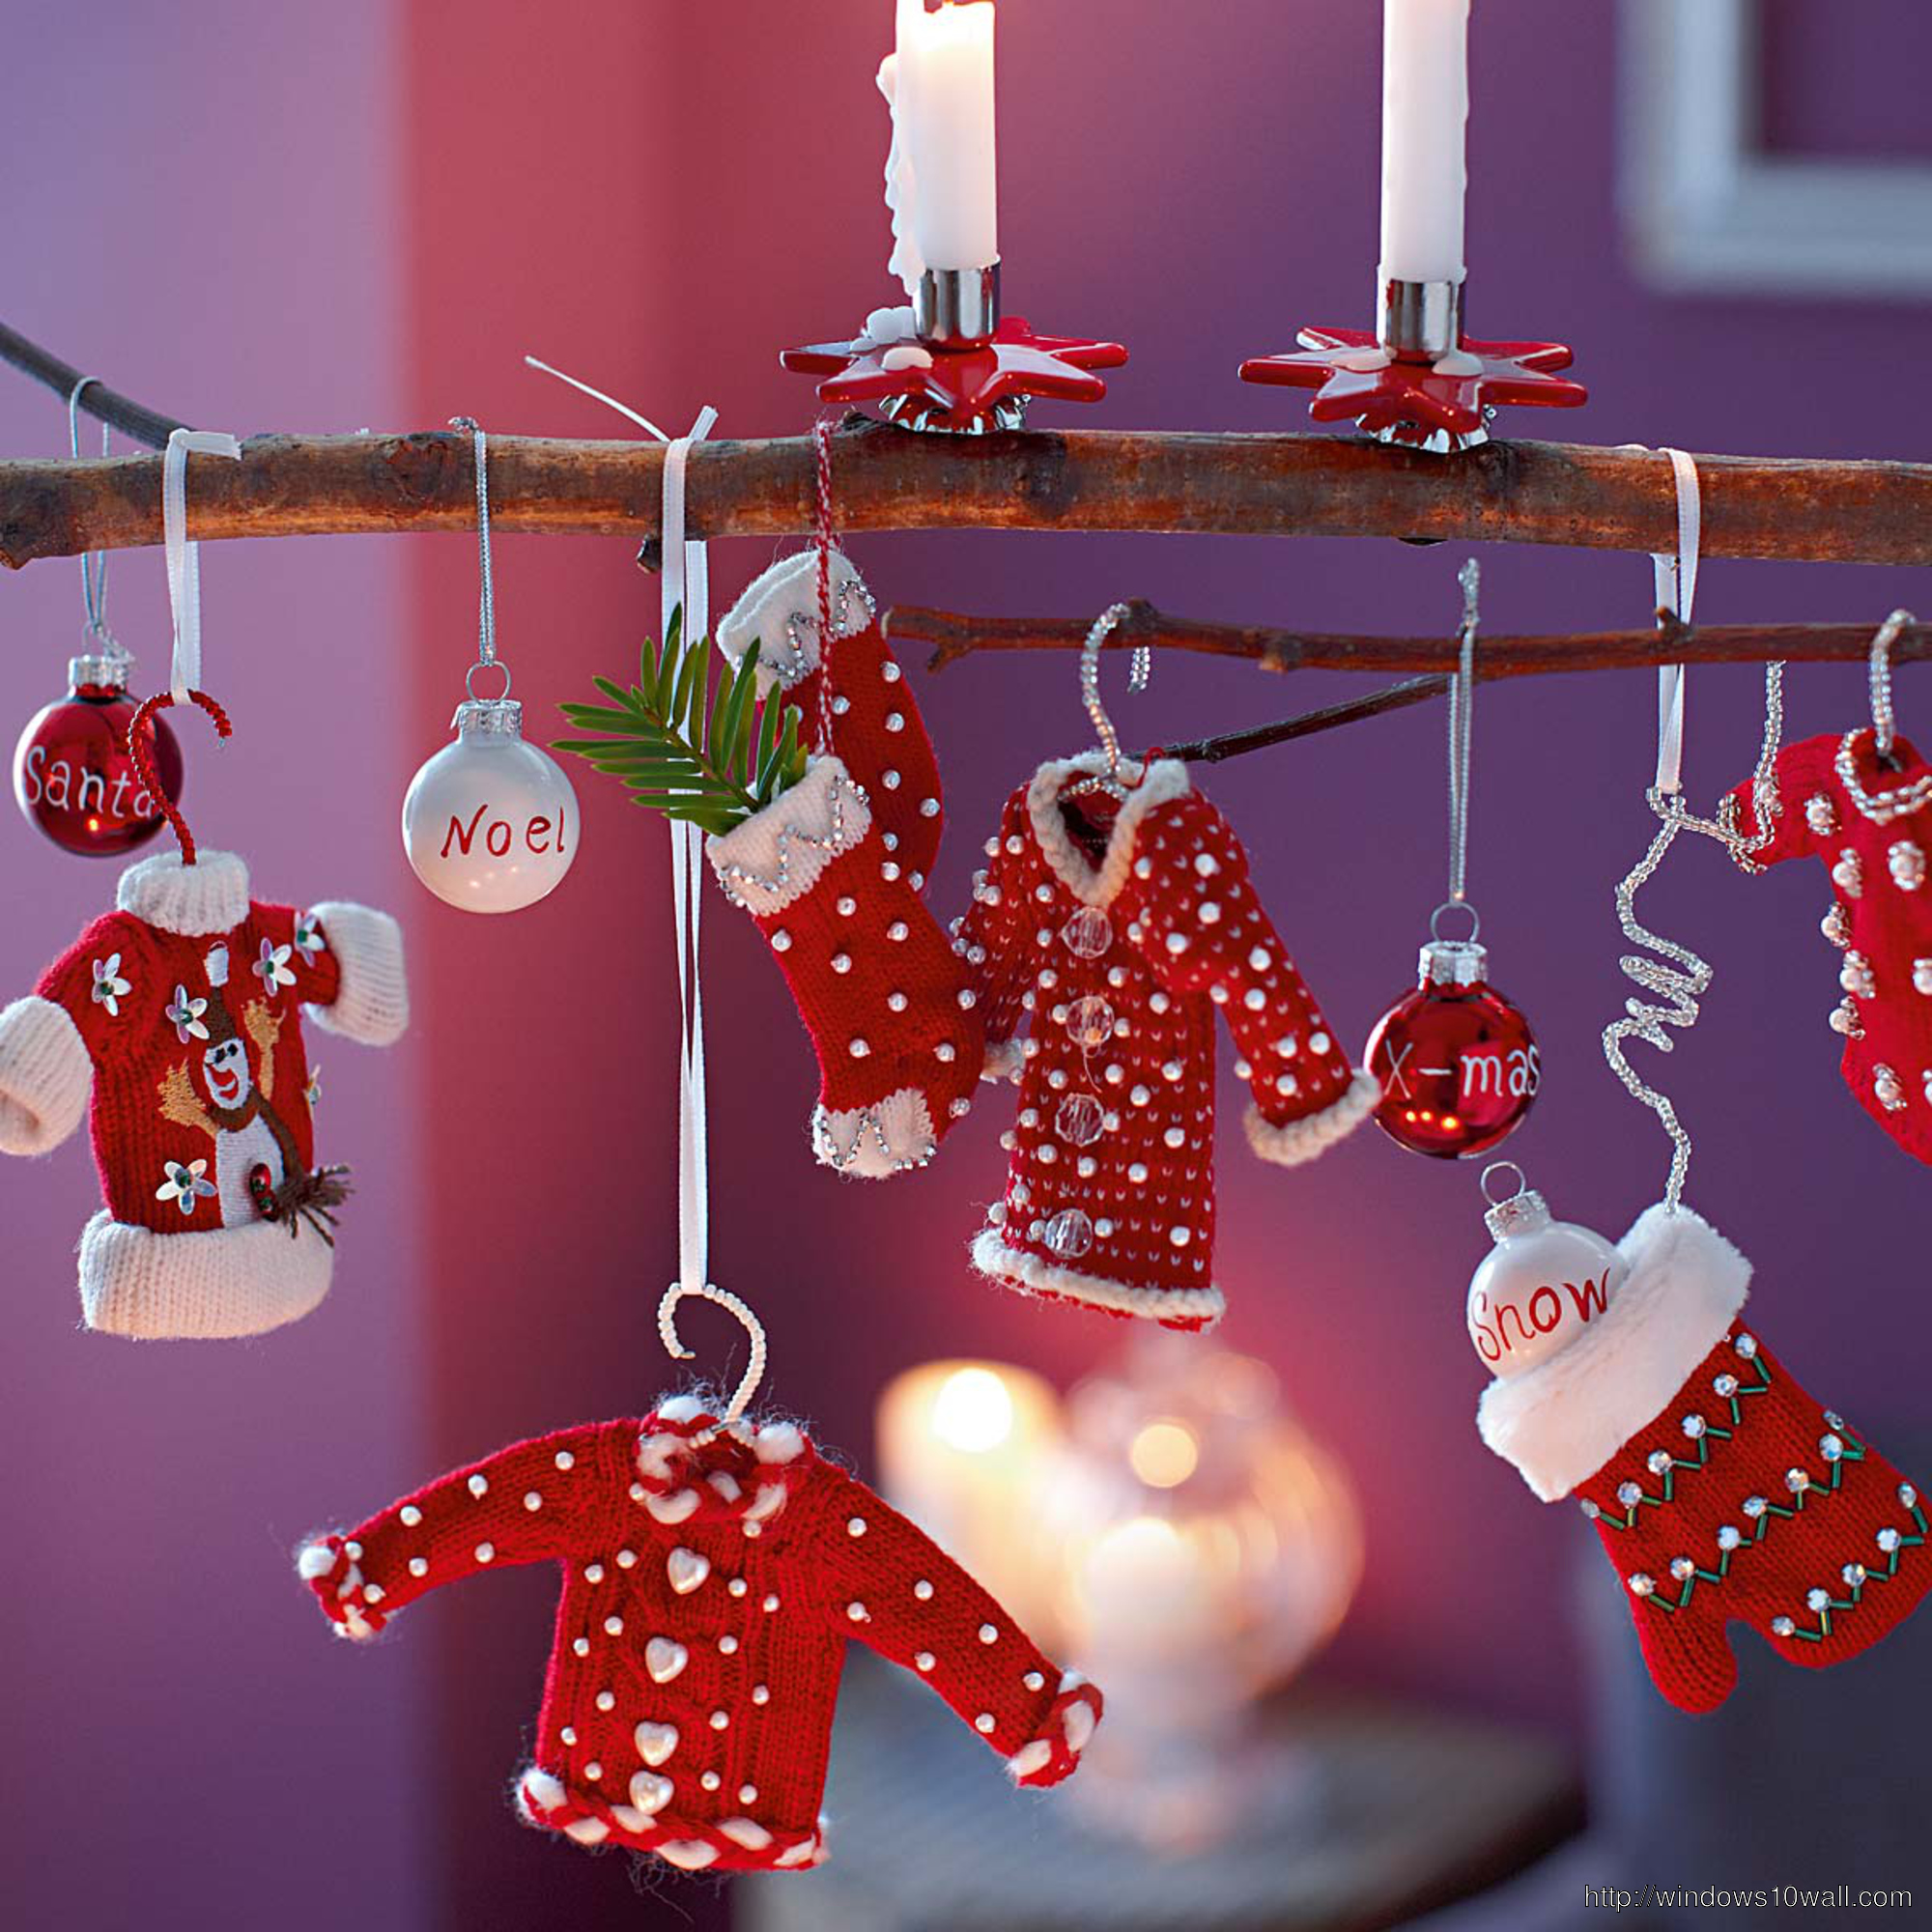 Festival page 3 of 5 windows 10 wallpapers for Christmas decorations for kids to make at home